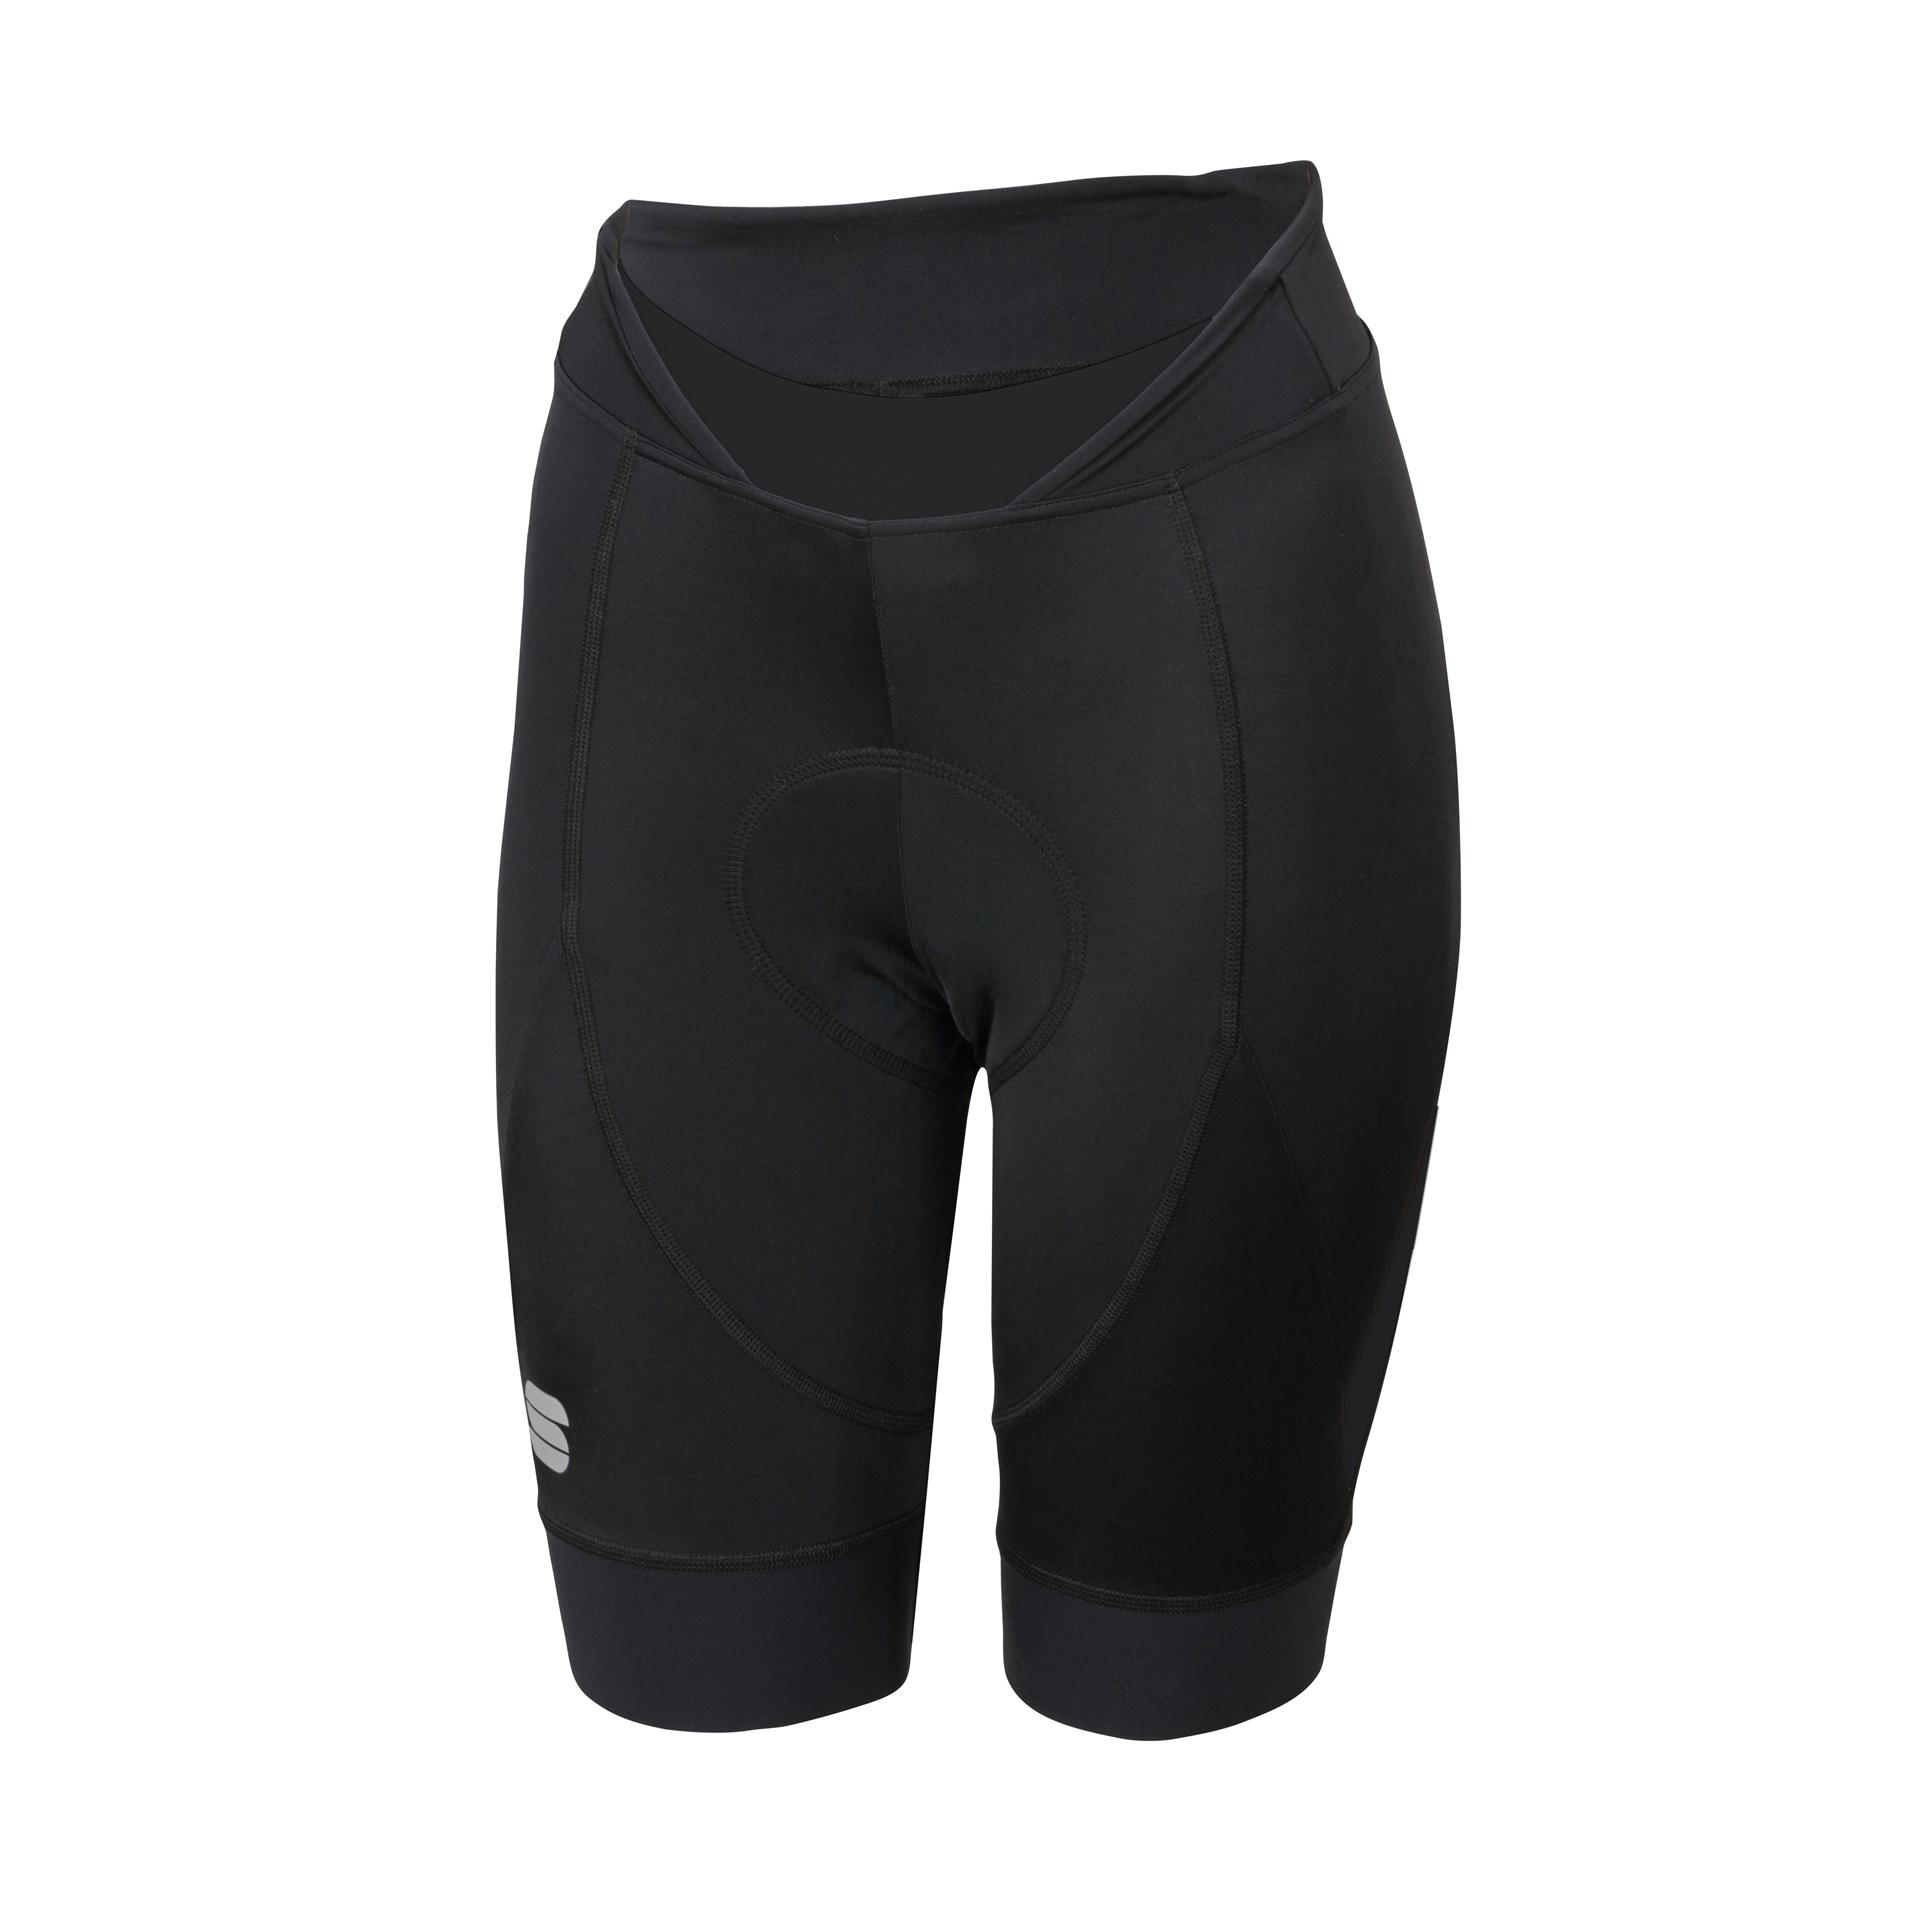 Sportful Fietsbroek zonder bretels Dames Zwart  / SF Neo W Short-Black